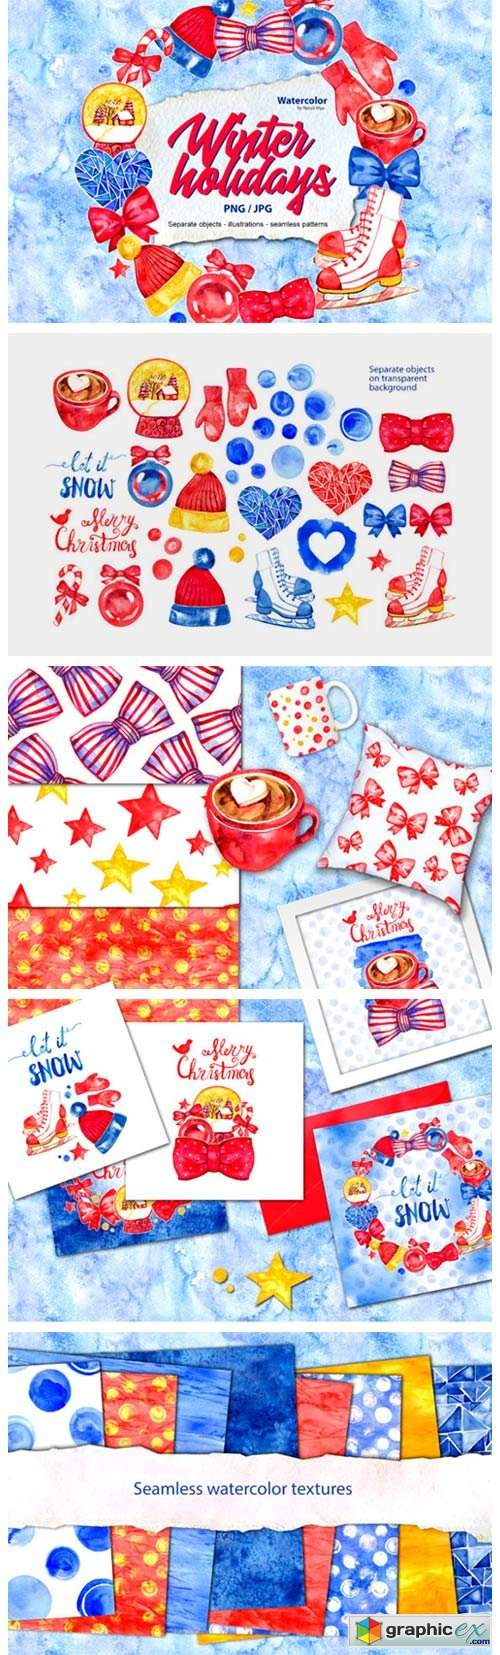 Watercolor Winter Holidays Set